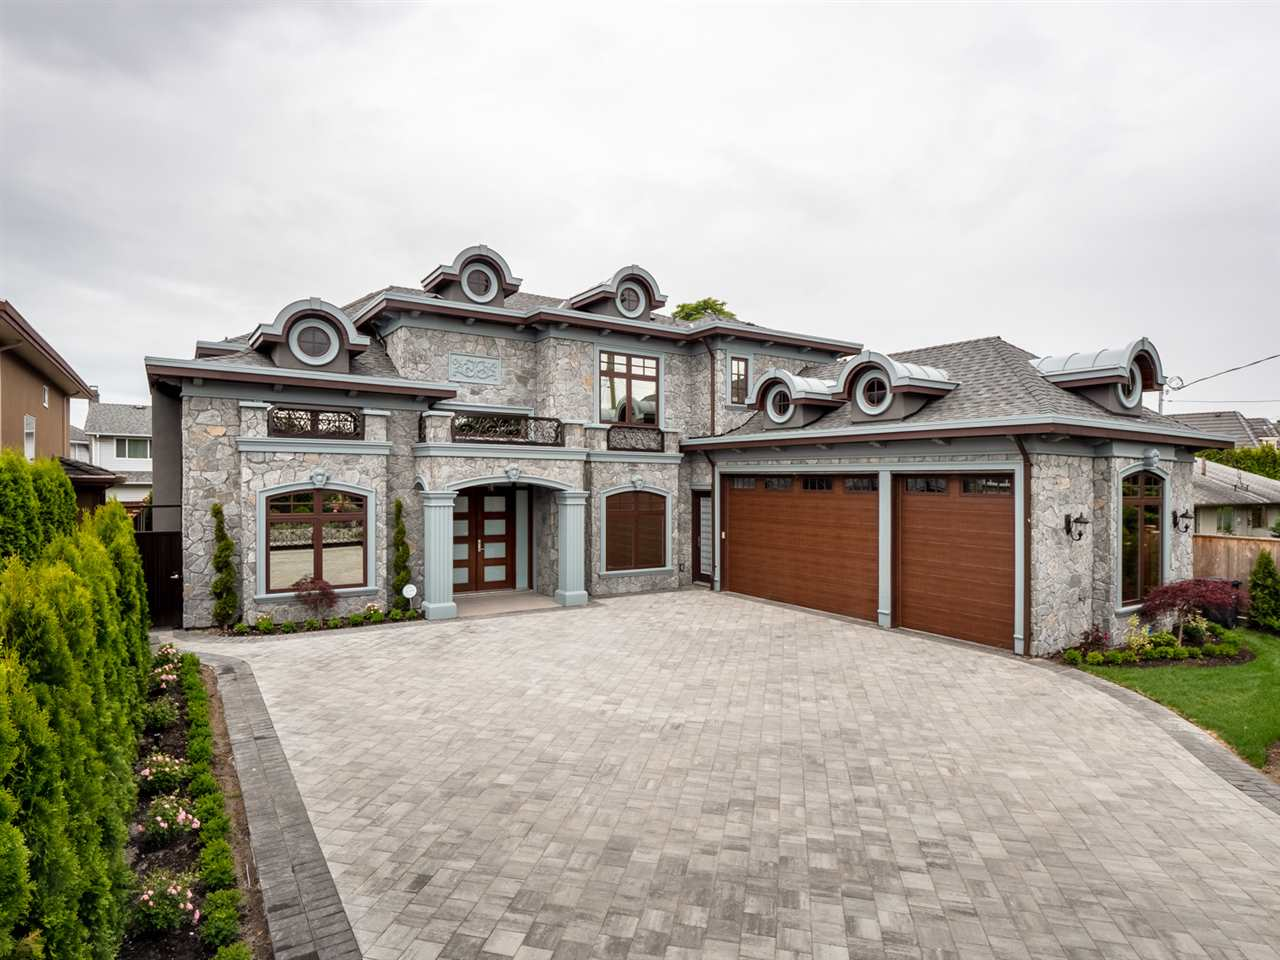 7751 EPERSON ROAD, 5 bed, 6 bath, at $3,880,000